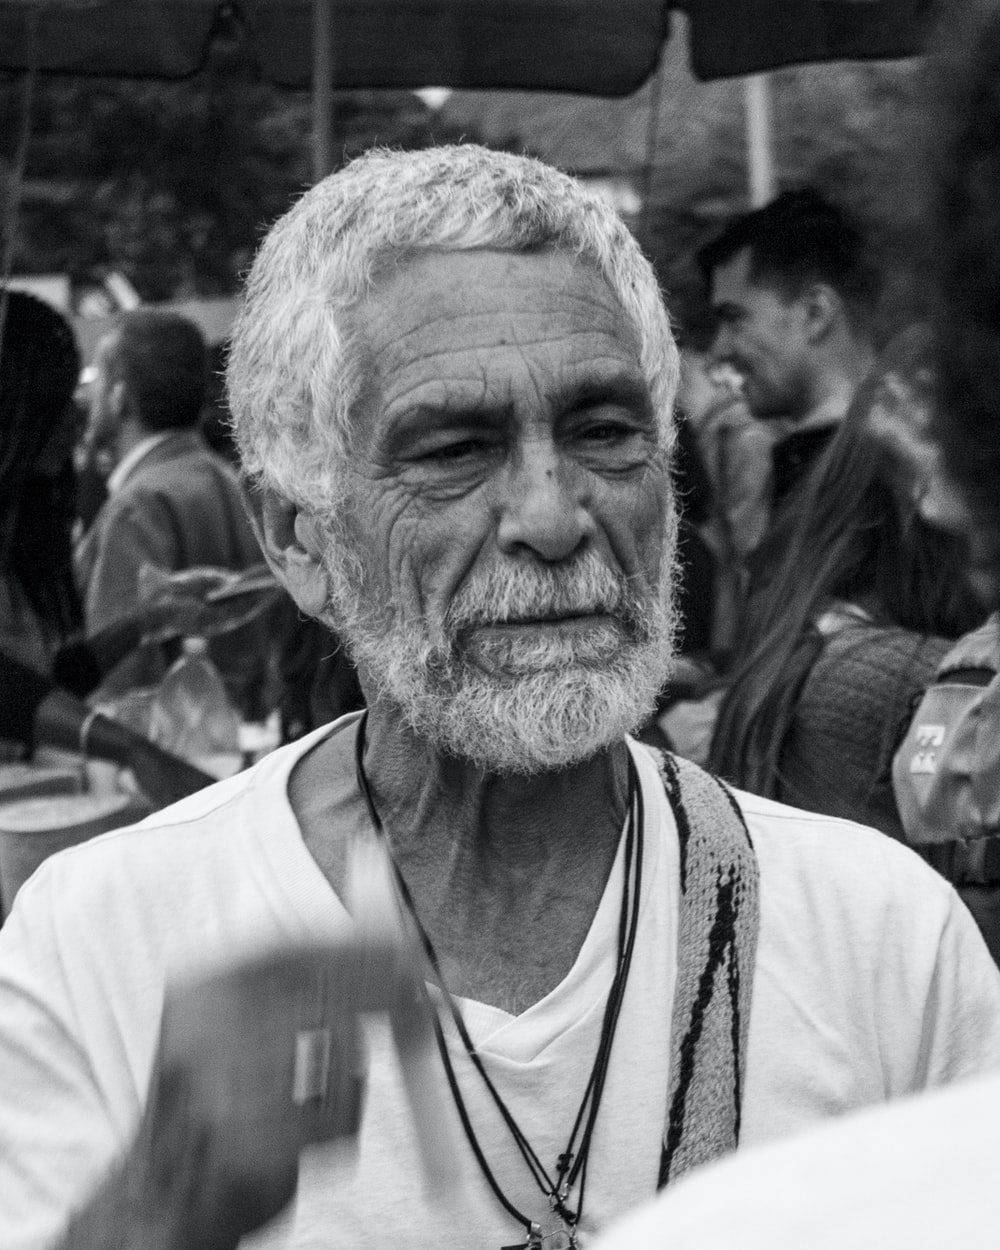 grayscale photography of bearded man